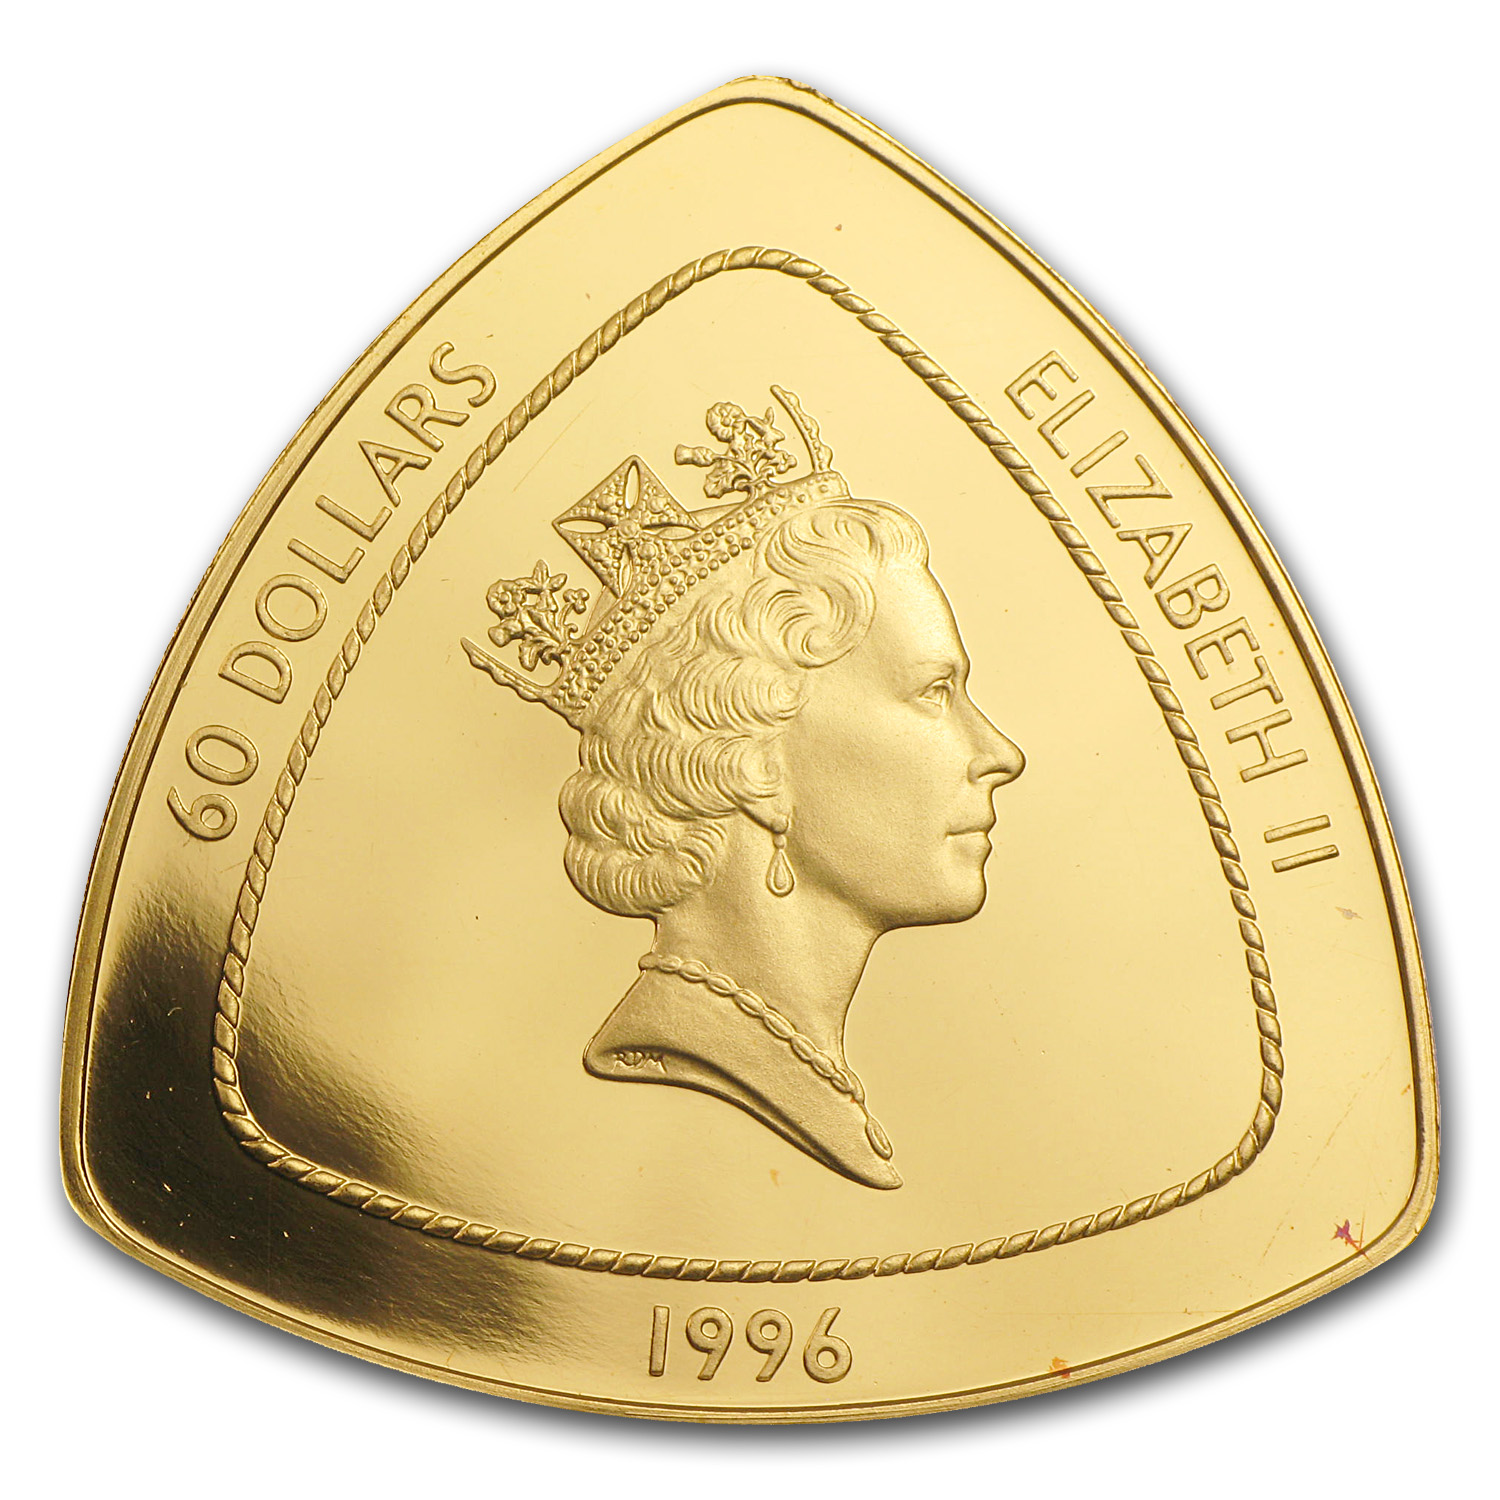 Bermuda 1996-1998 $60 Gold Proof Triangle Coin